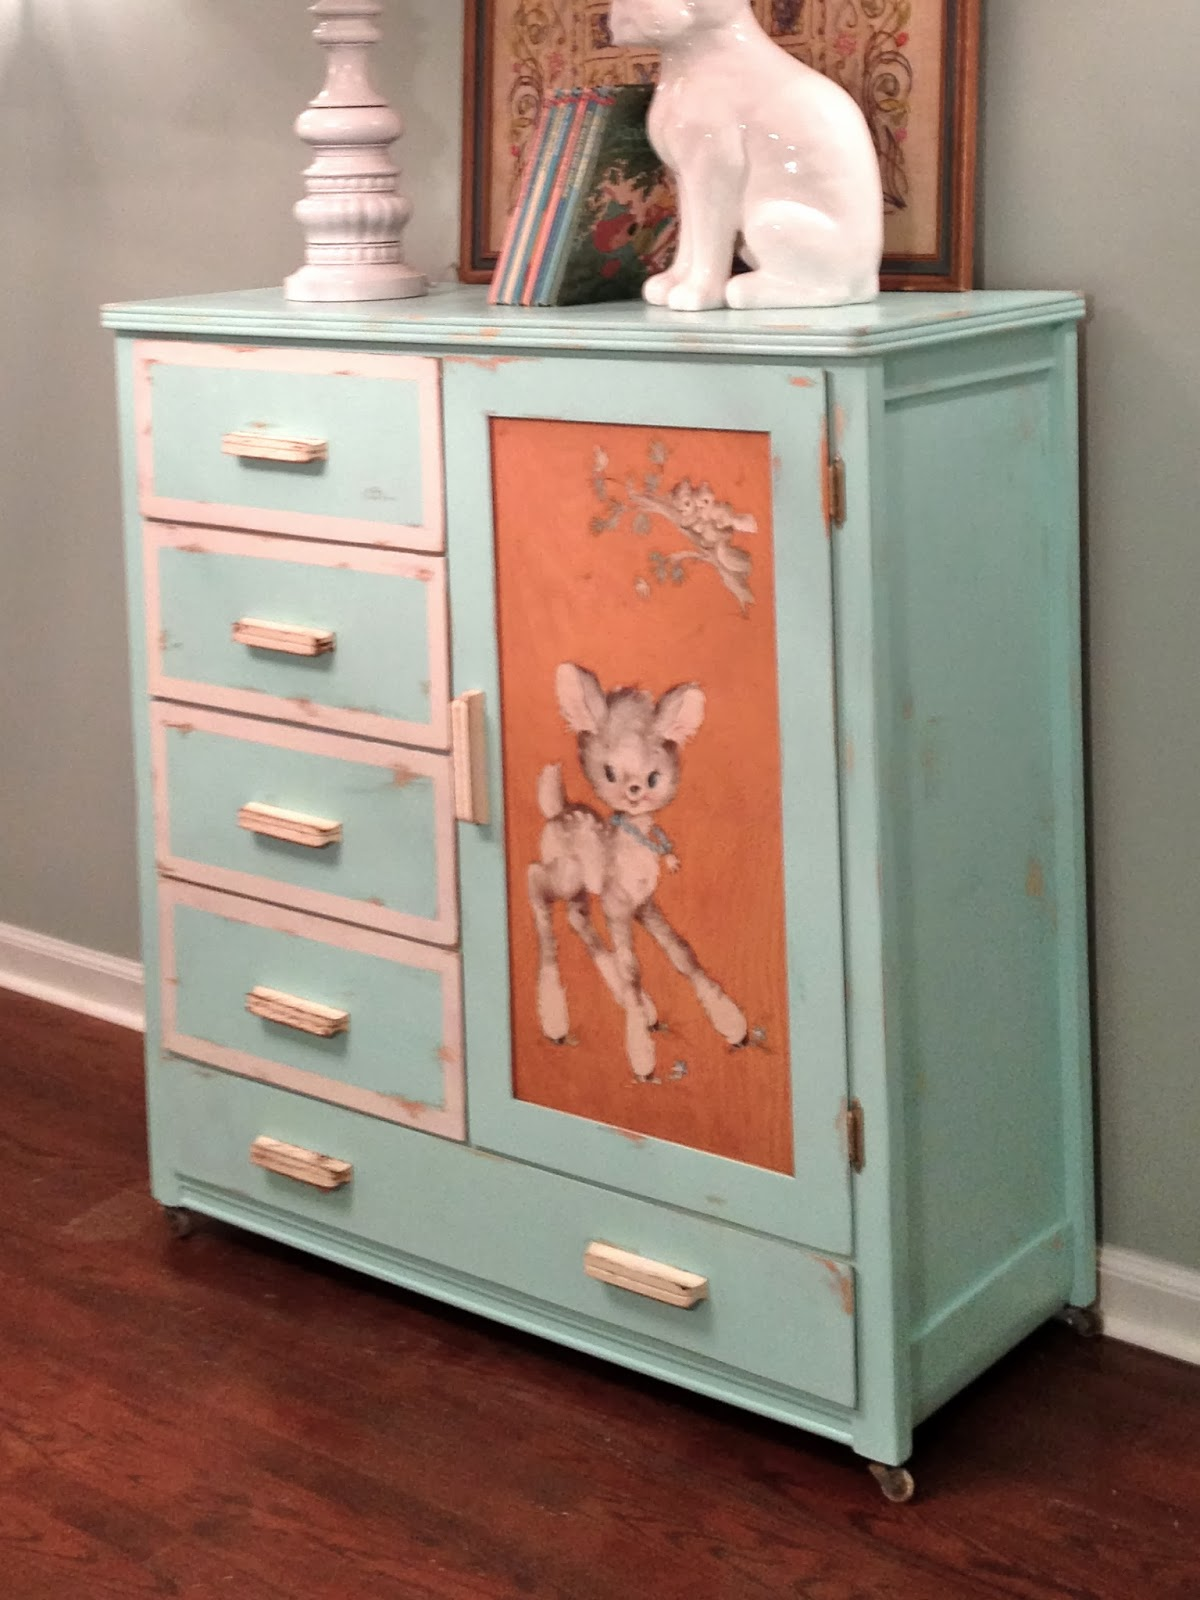 My First Etsy Listing Vintage Teal Dresser With Distressed Finish Crackerjack23